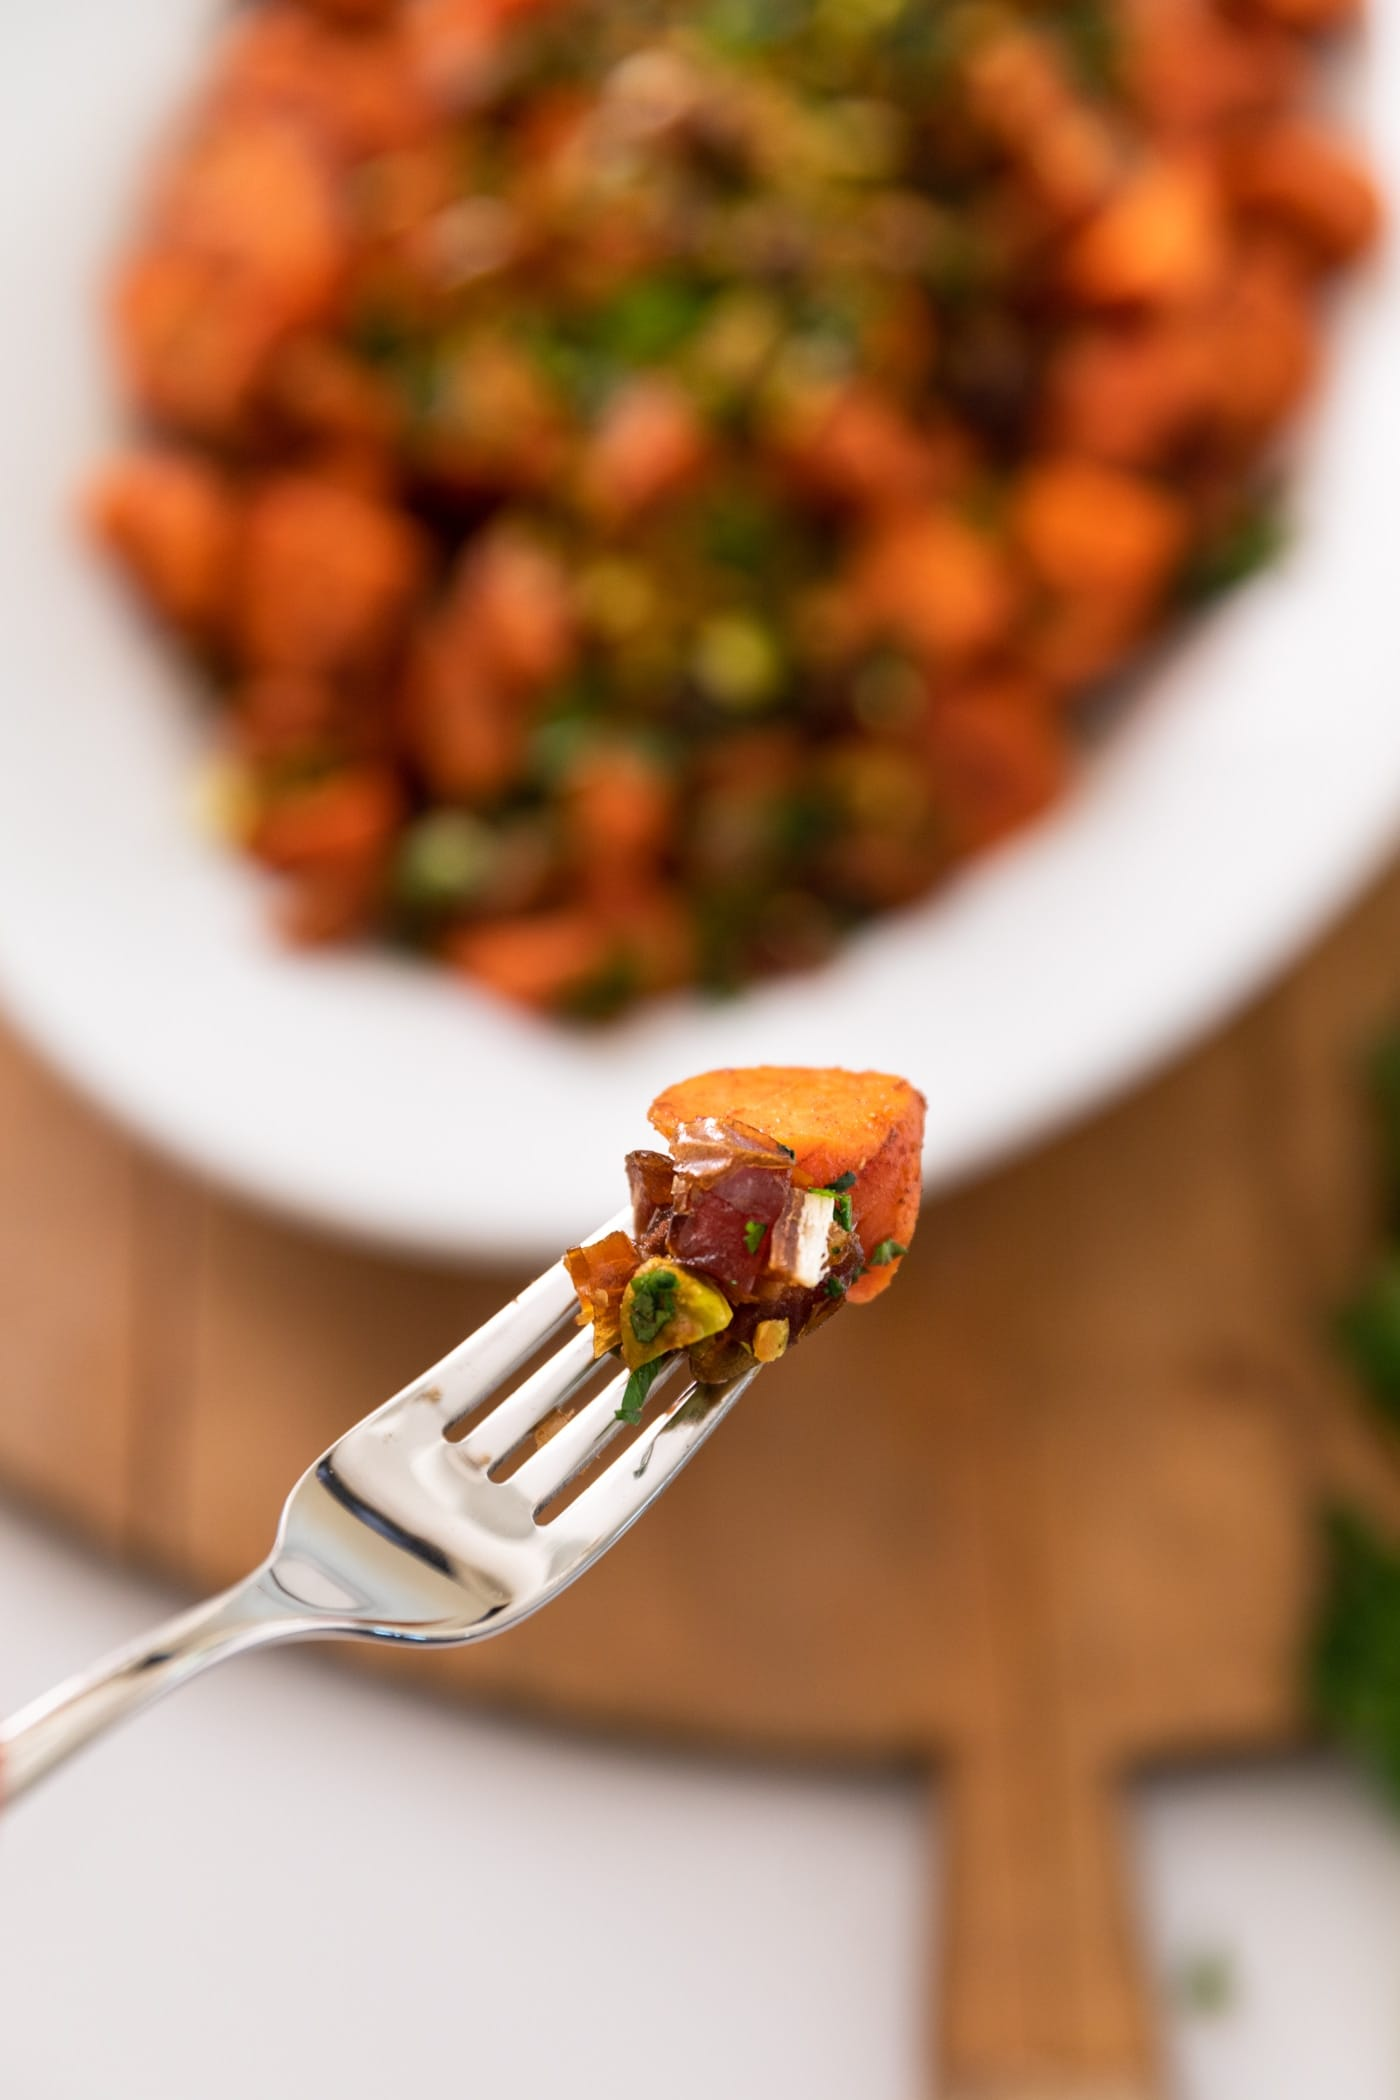 Fork holding carrot and piece of date in front of bowl filled with carrots and wood cutting board